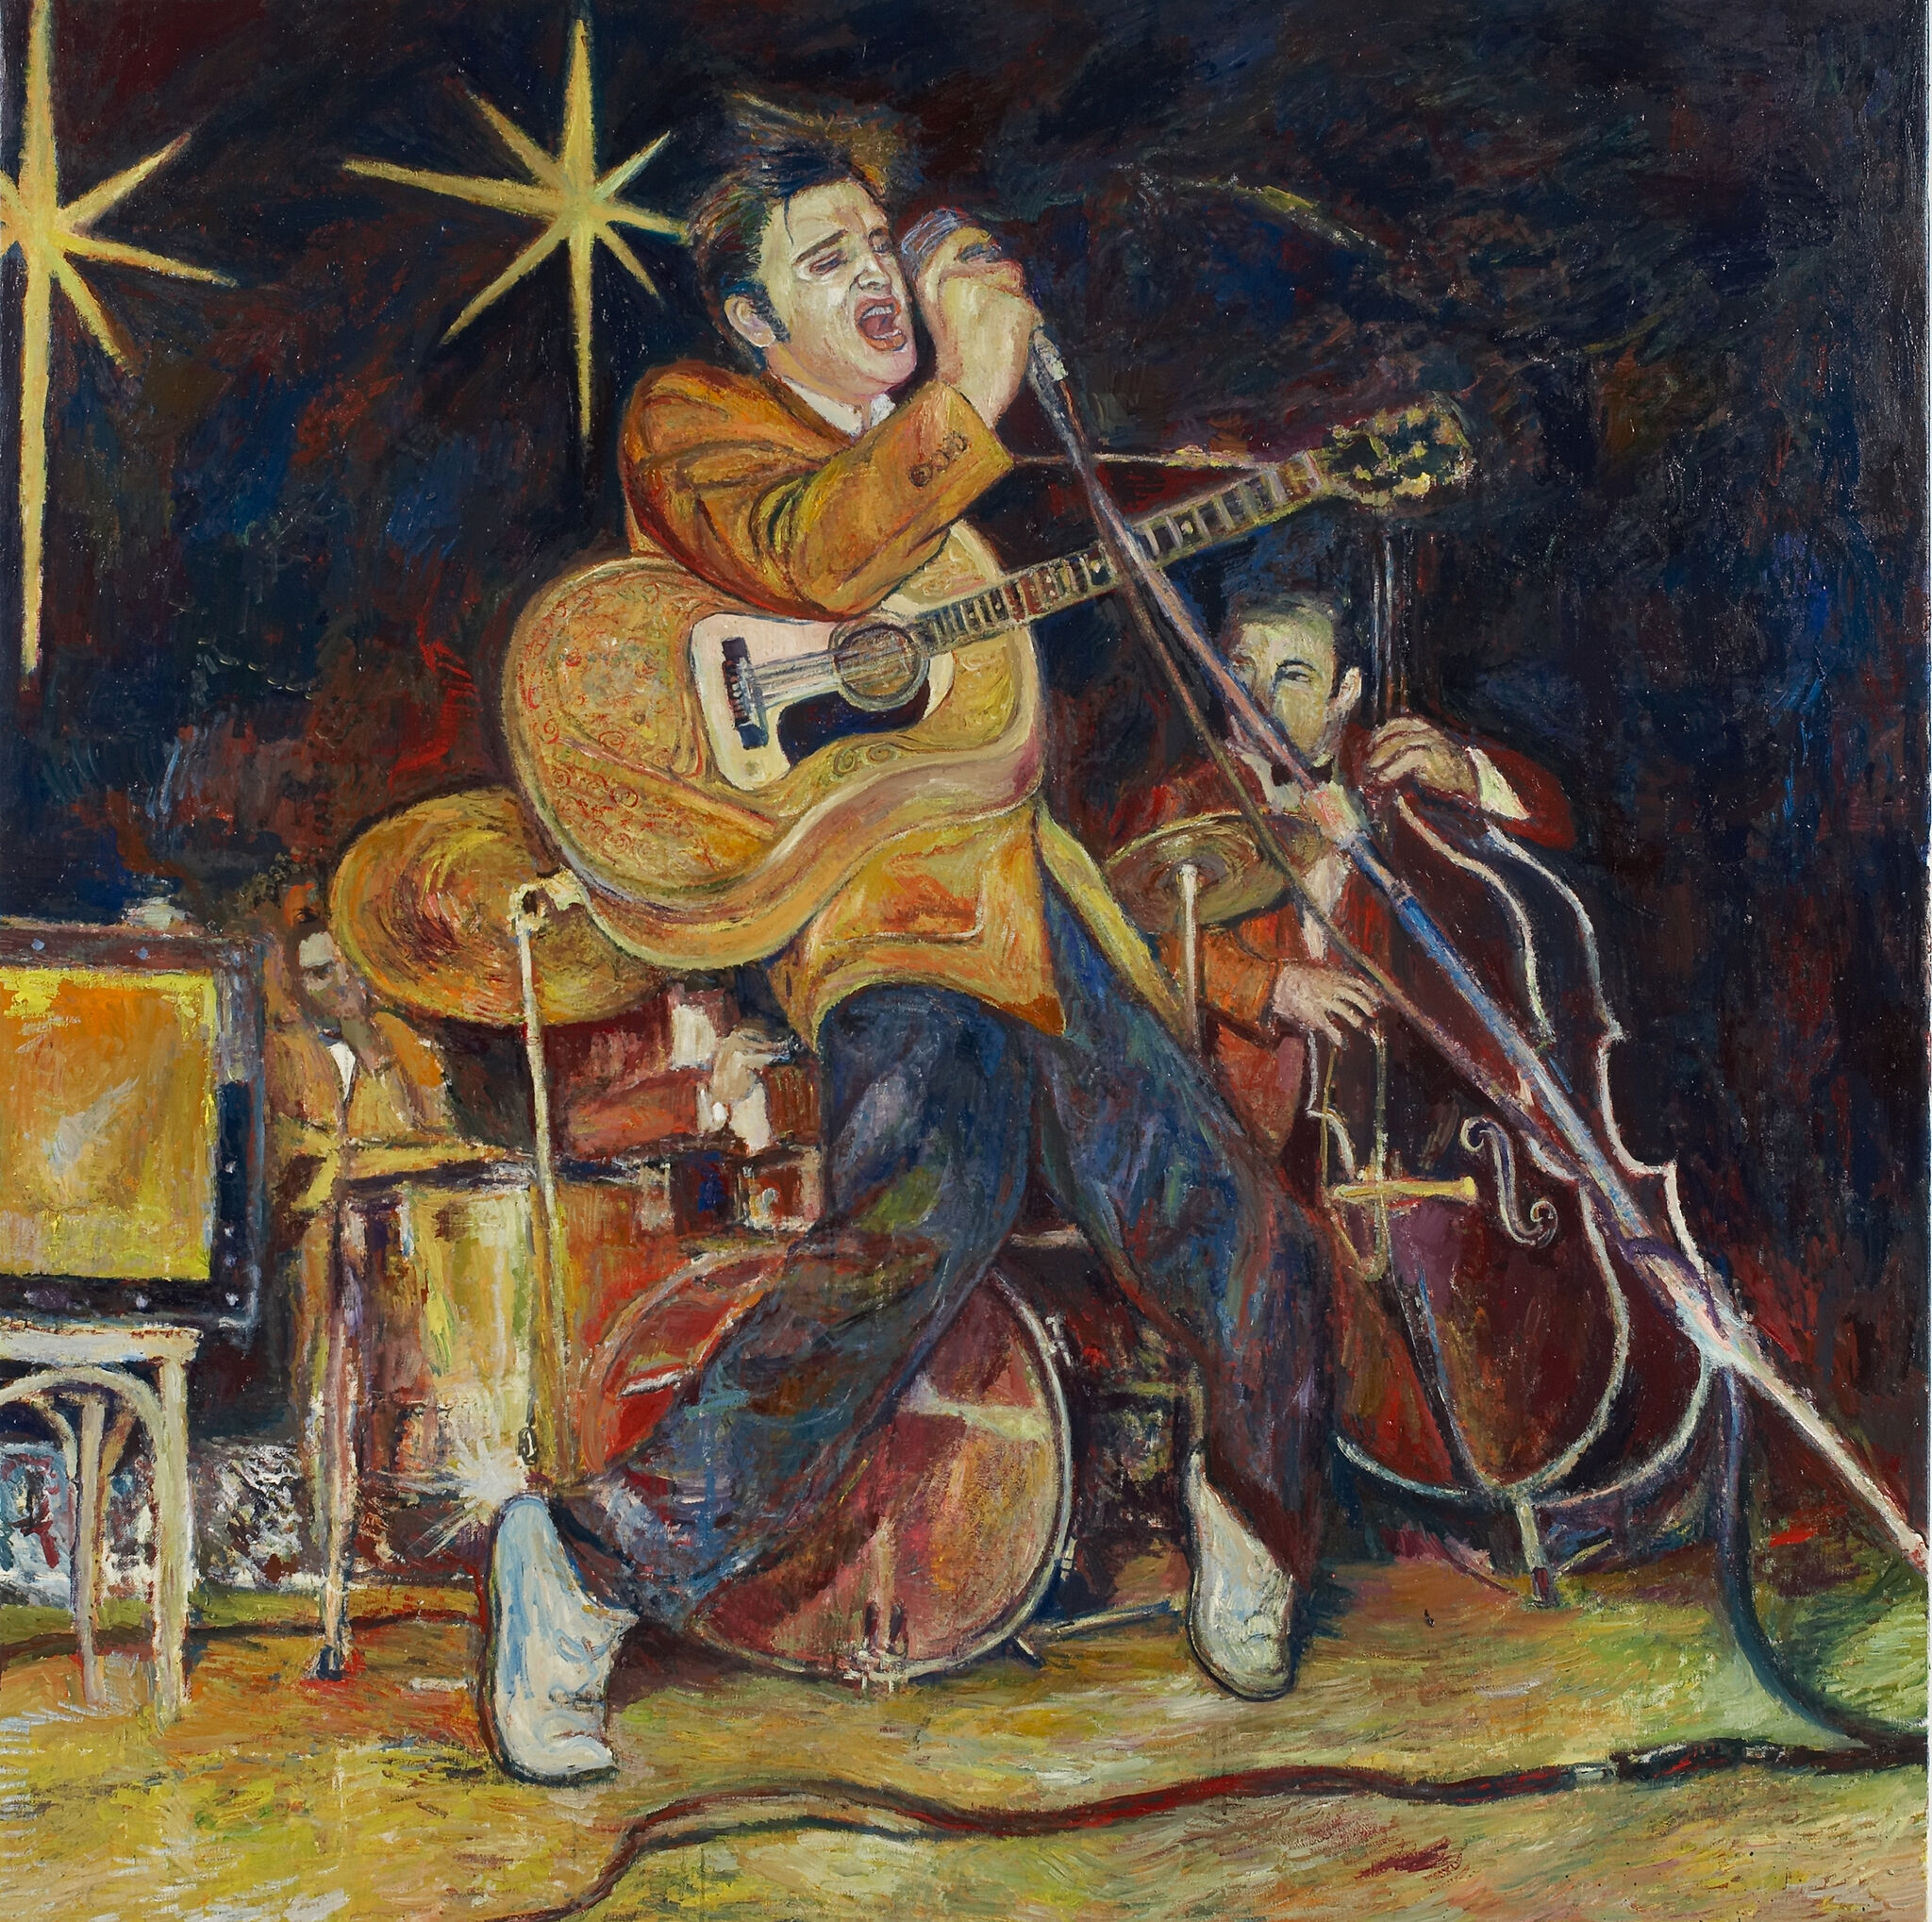 A painting of Elvis Presley singing.